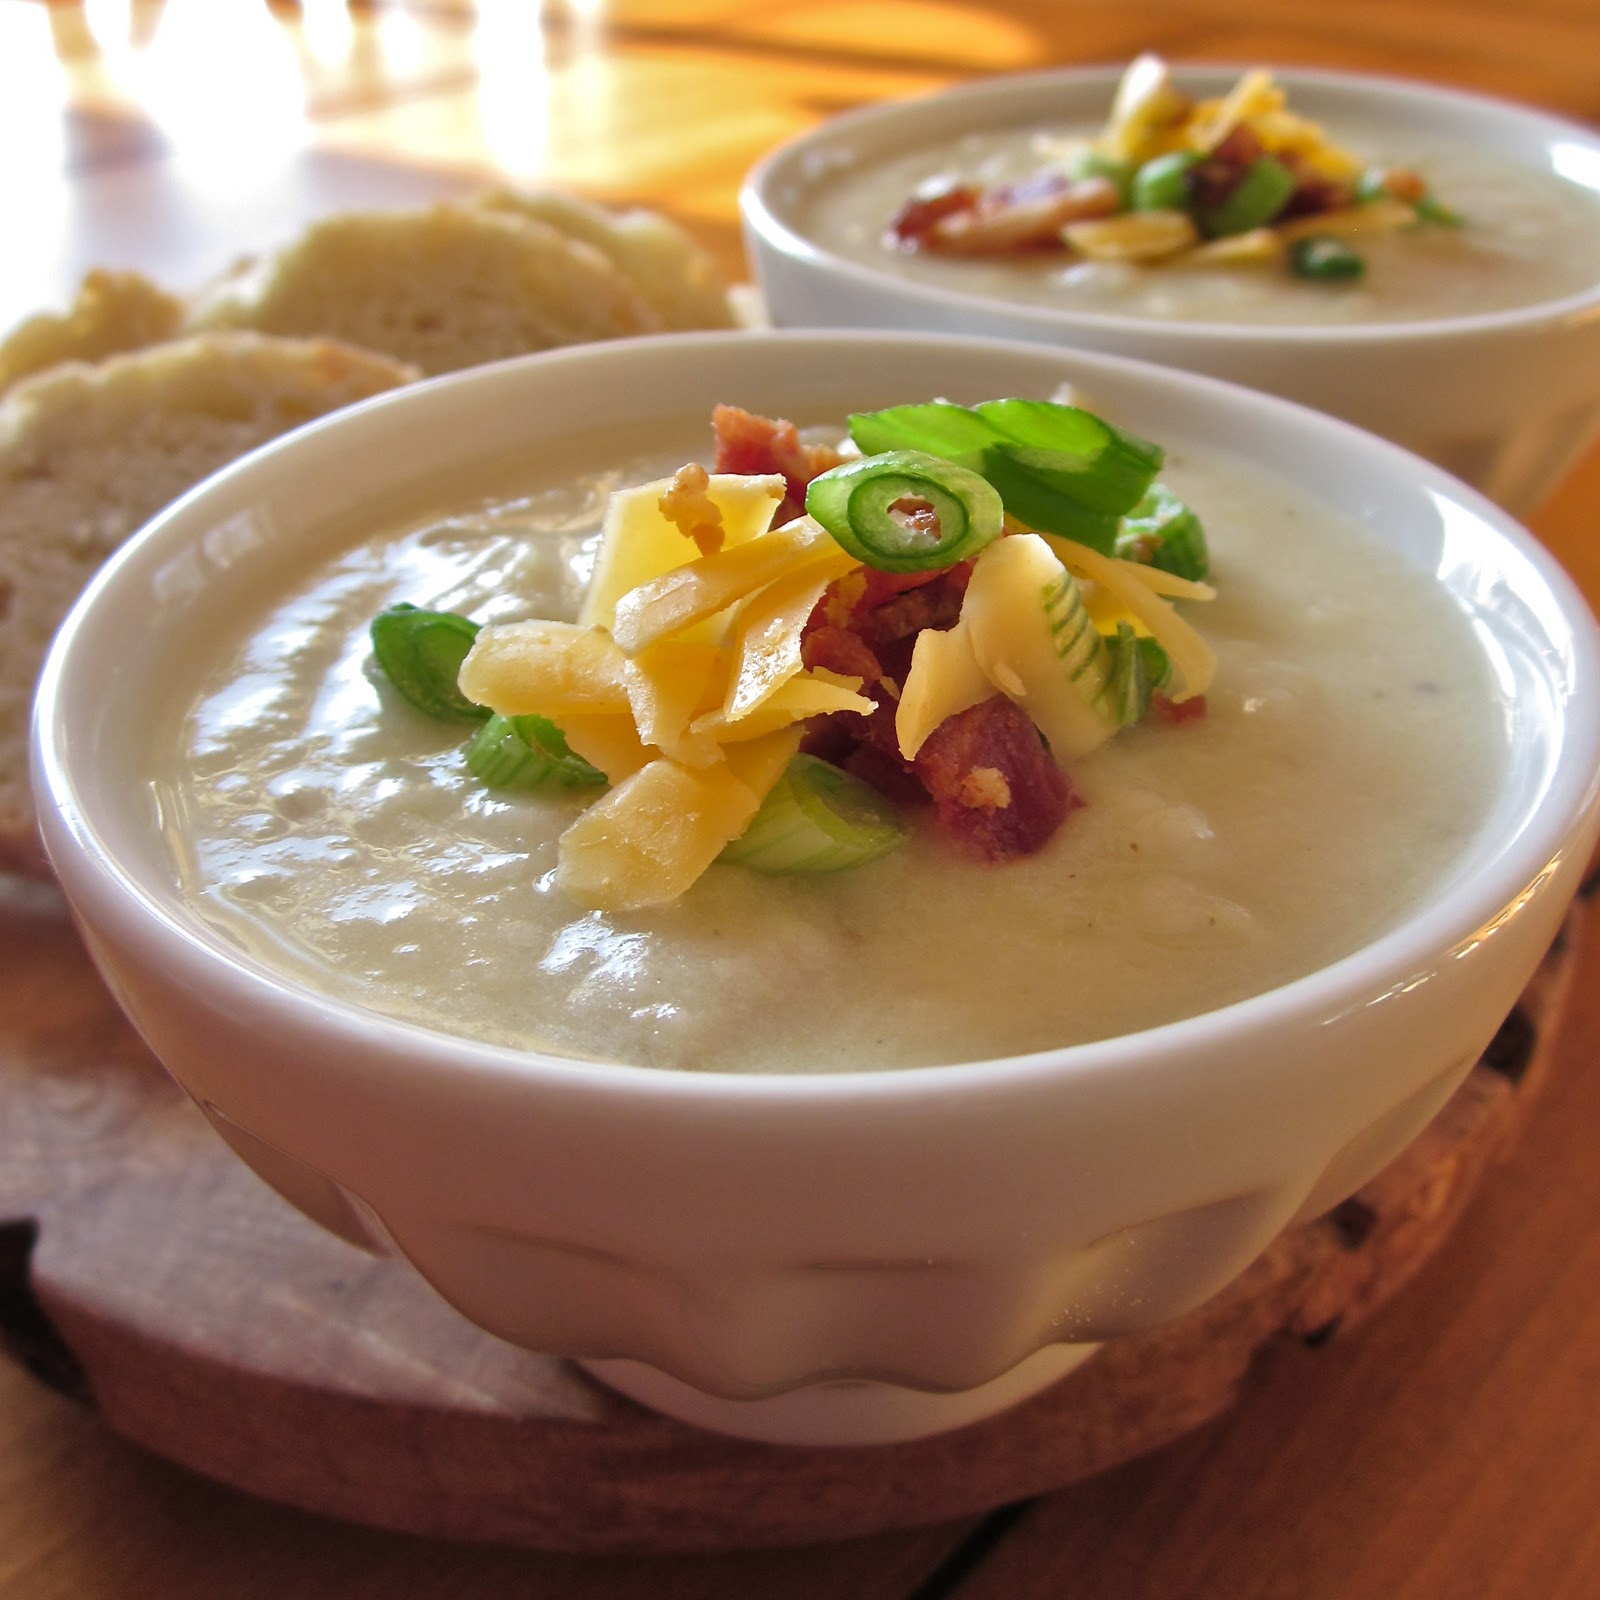 Arctic Garden Studio: Roasted Garlic and Potato Soup